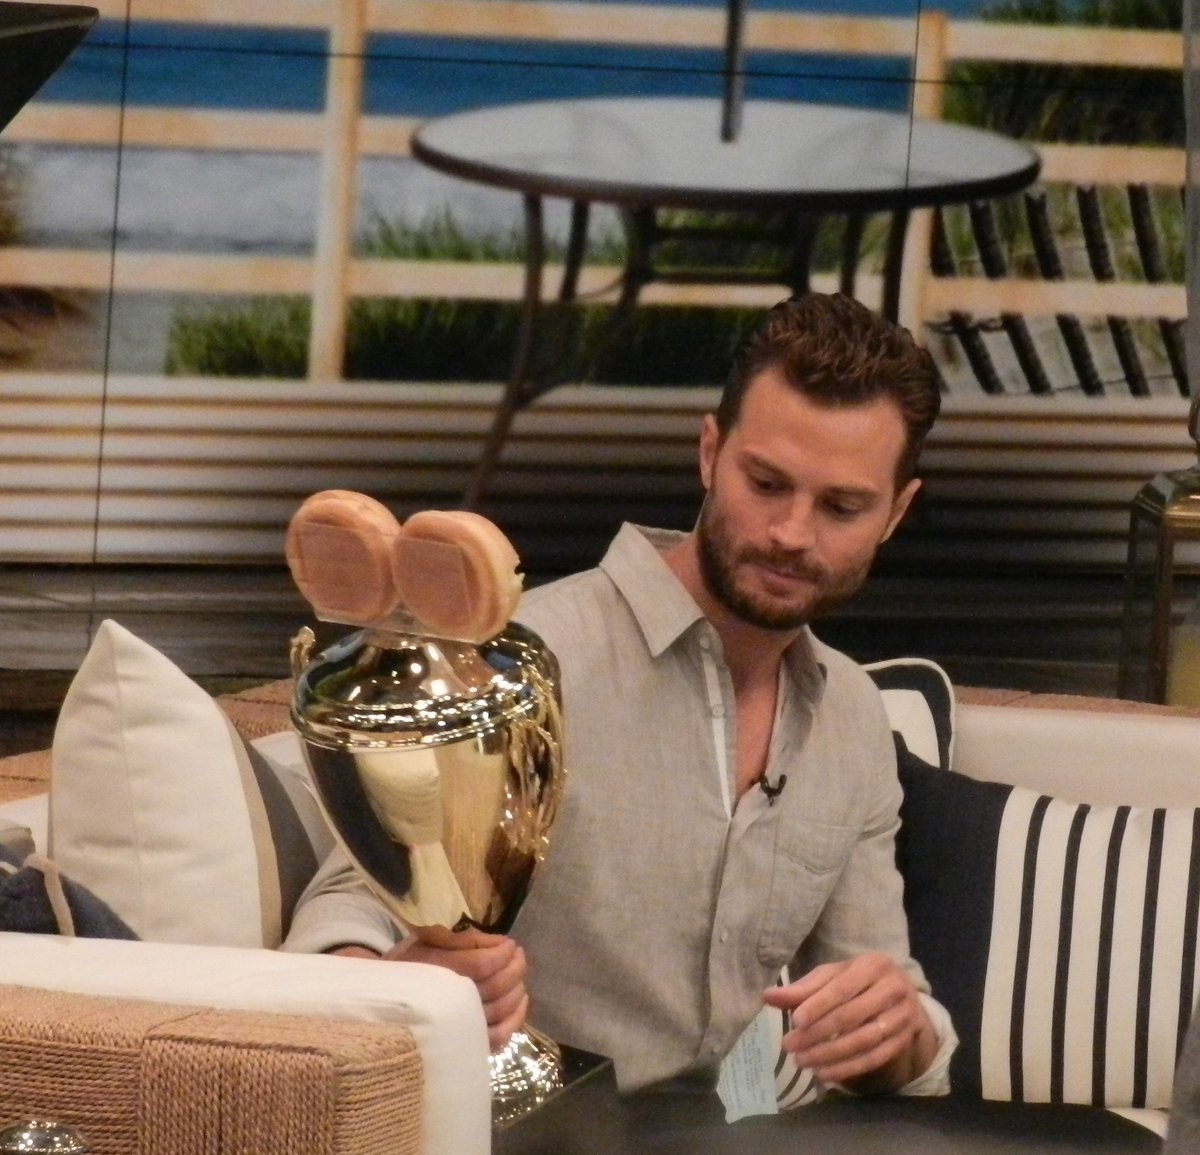 """Jamie on """"Live! With Kelly""""! (August 5, 2016) #FlashbackFriday #JamieDornan<br>http://pic.twitter.com/9Q3dSkH9wO"""